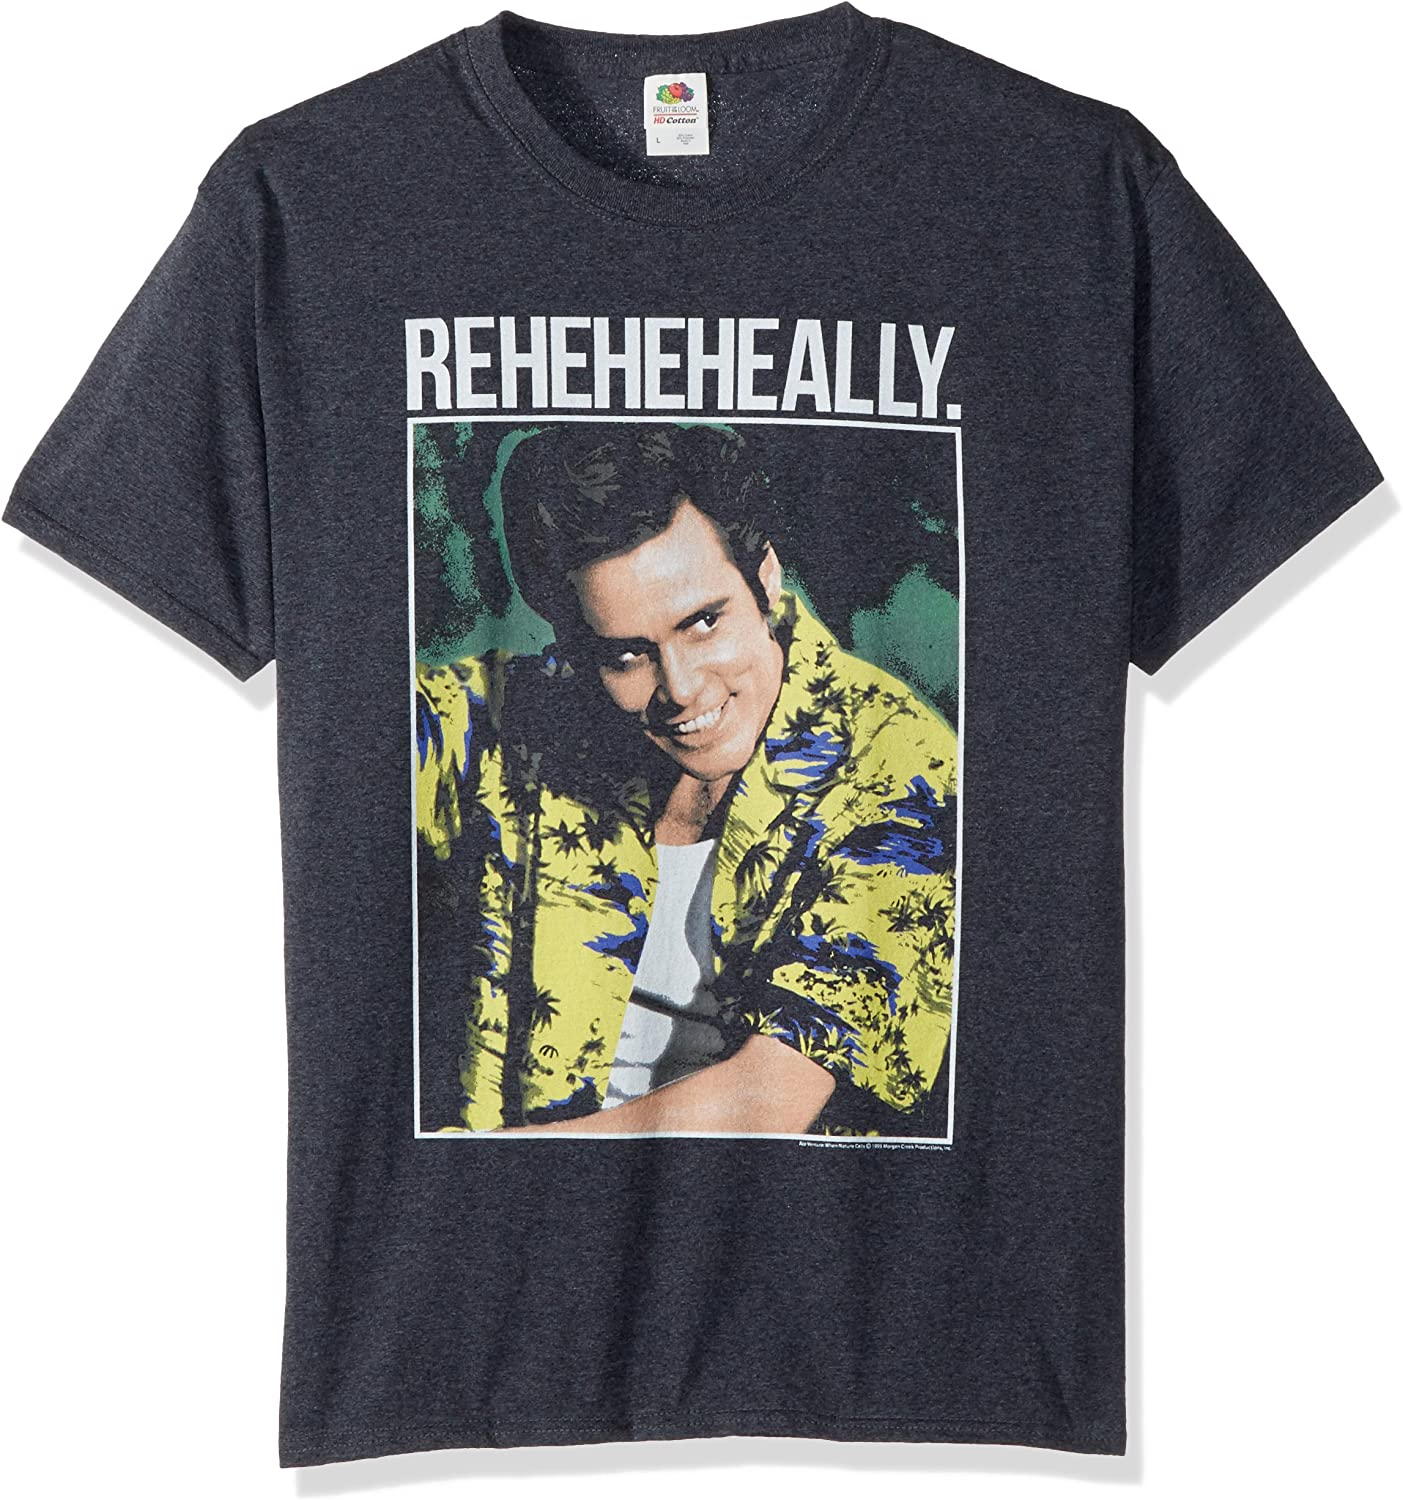 American Classics Men's Ace Ventura Reheheheally Adult Short Sleeve T-Shirt